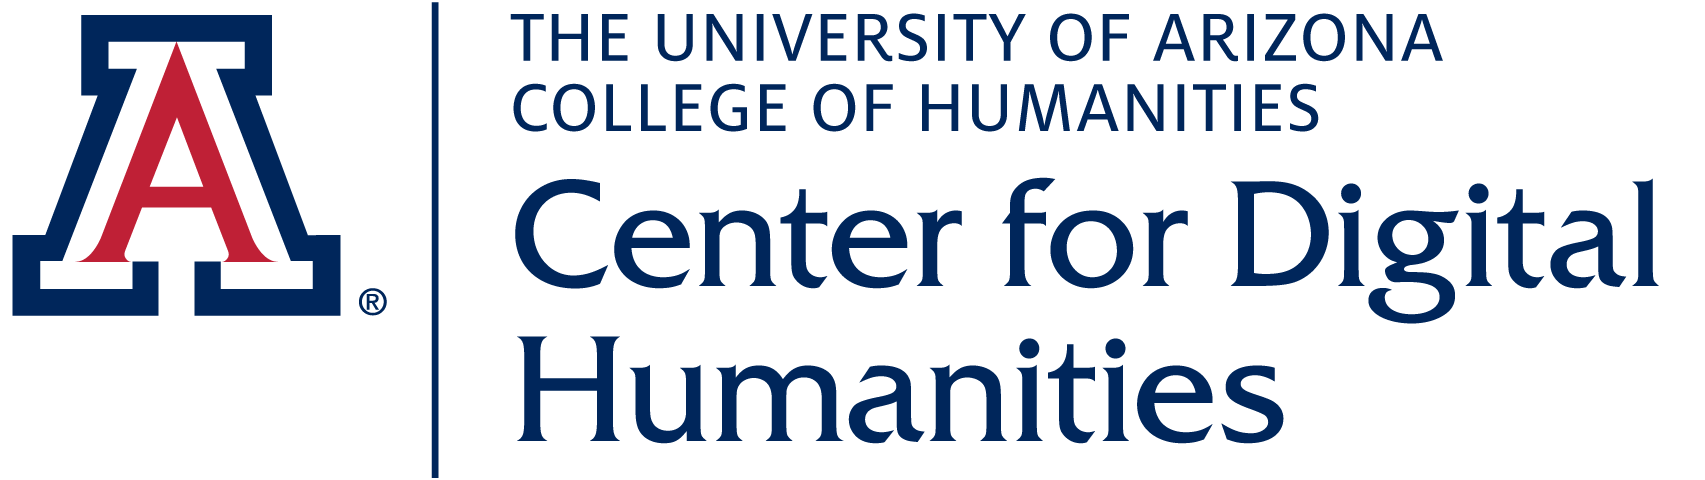 Center for Digital Humanities